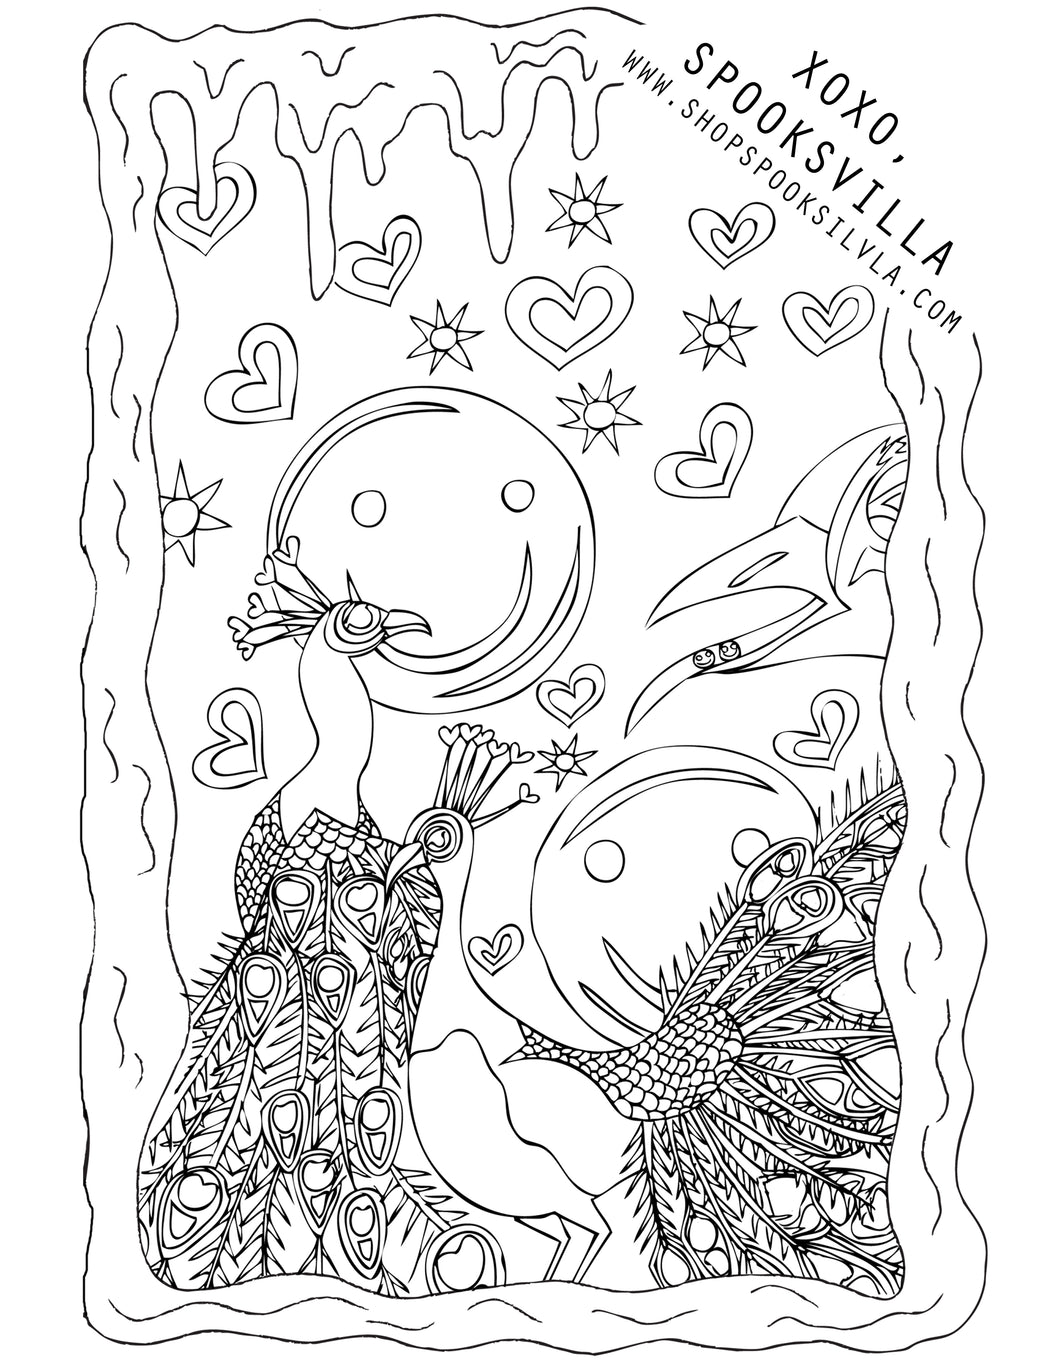 FREE COLORING PAGE 2: PEACOCKS ON ECSTASY